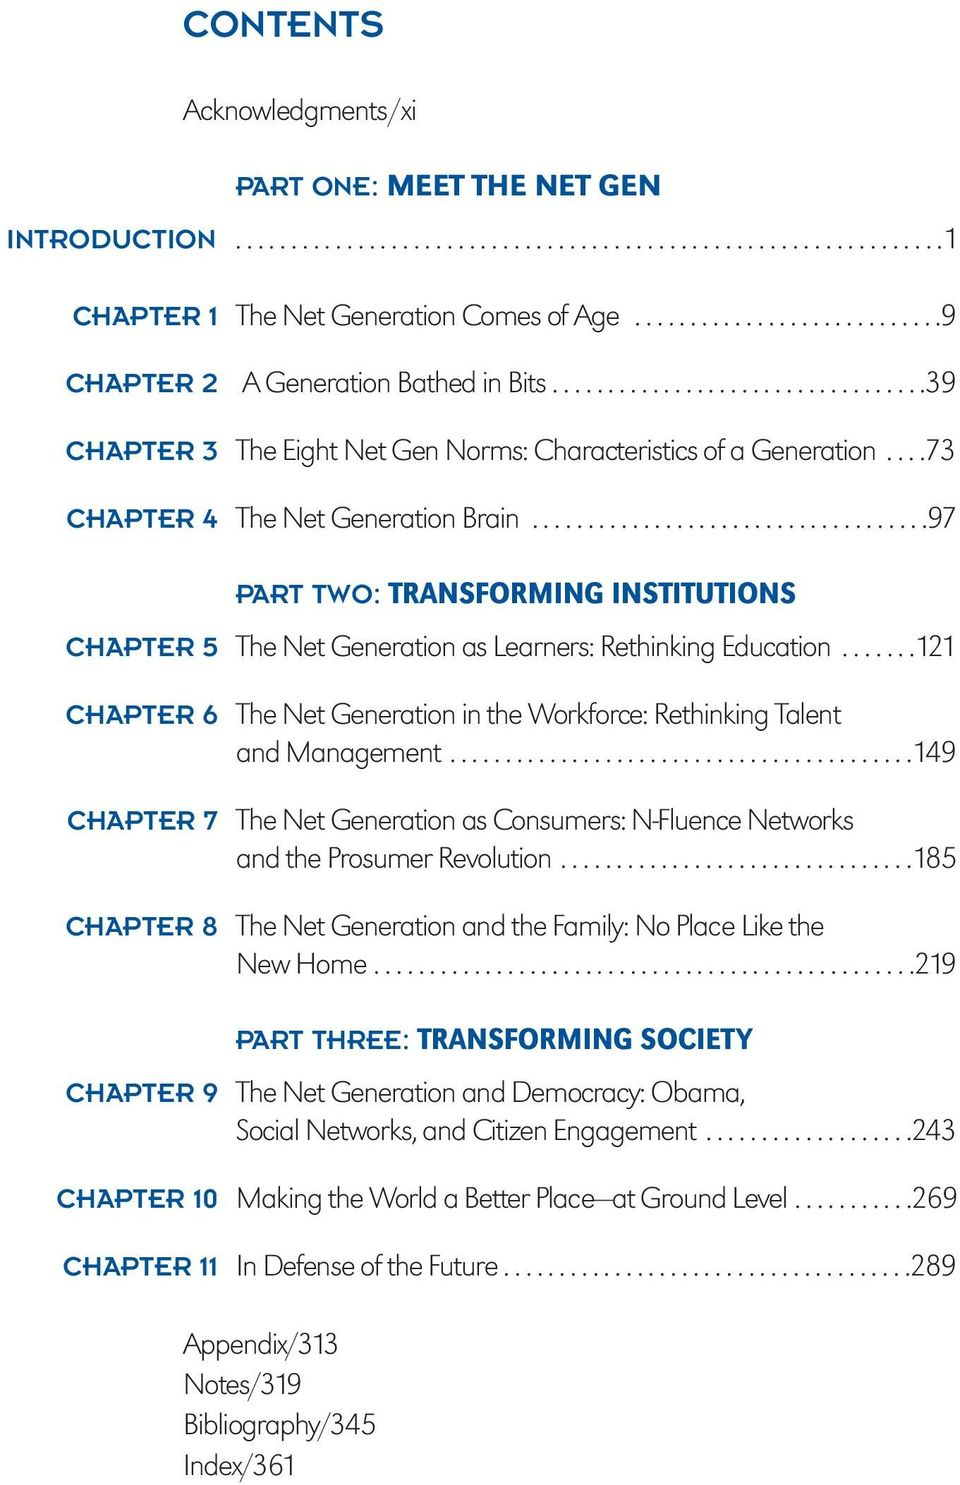 ...73 CHAPTER 4 The Net Generation Brain....................................97 PART TWO: TRANSFORMING INSTITUTIONS CHAPTER 5 The Net Generation as Learners: Rethinking Education.